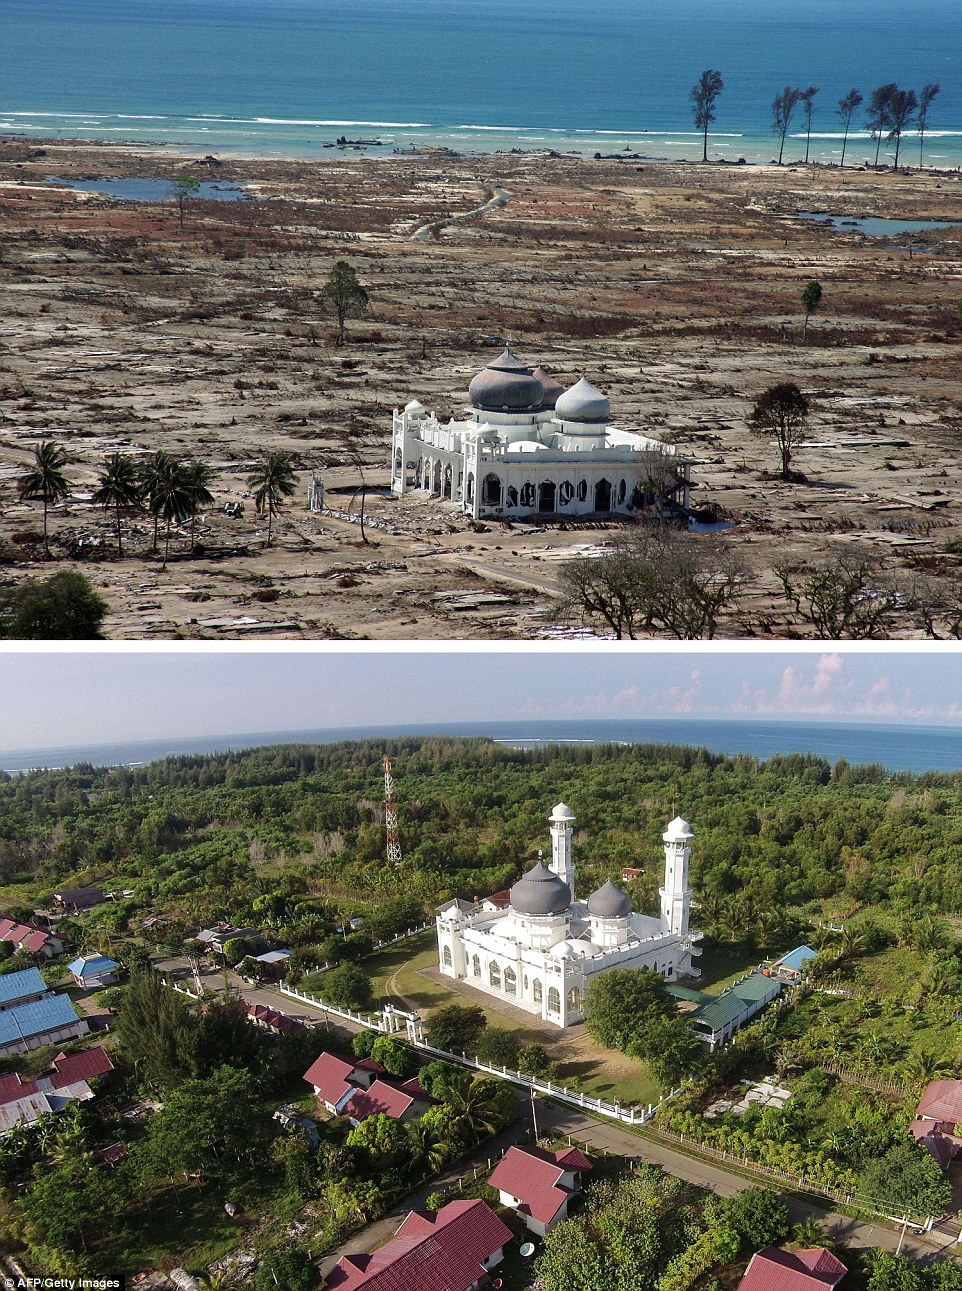 The top photograph was taken with a telephoto lens on January 16, 2005, more than two weeks after the tsunami, showing a partly damaged mosque in the Lampuuk coastal district of Banda Aceh, staining alone in the debris, and photographed again, below, this month